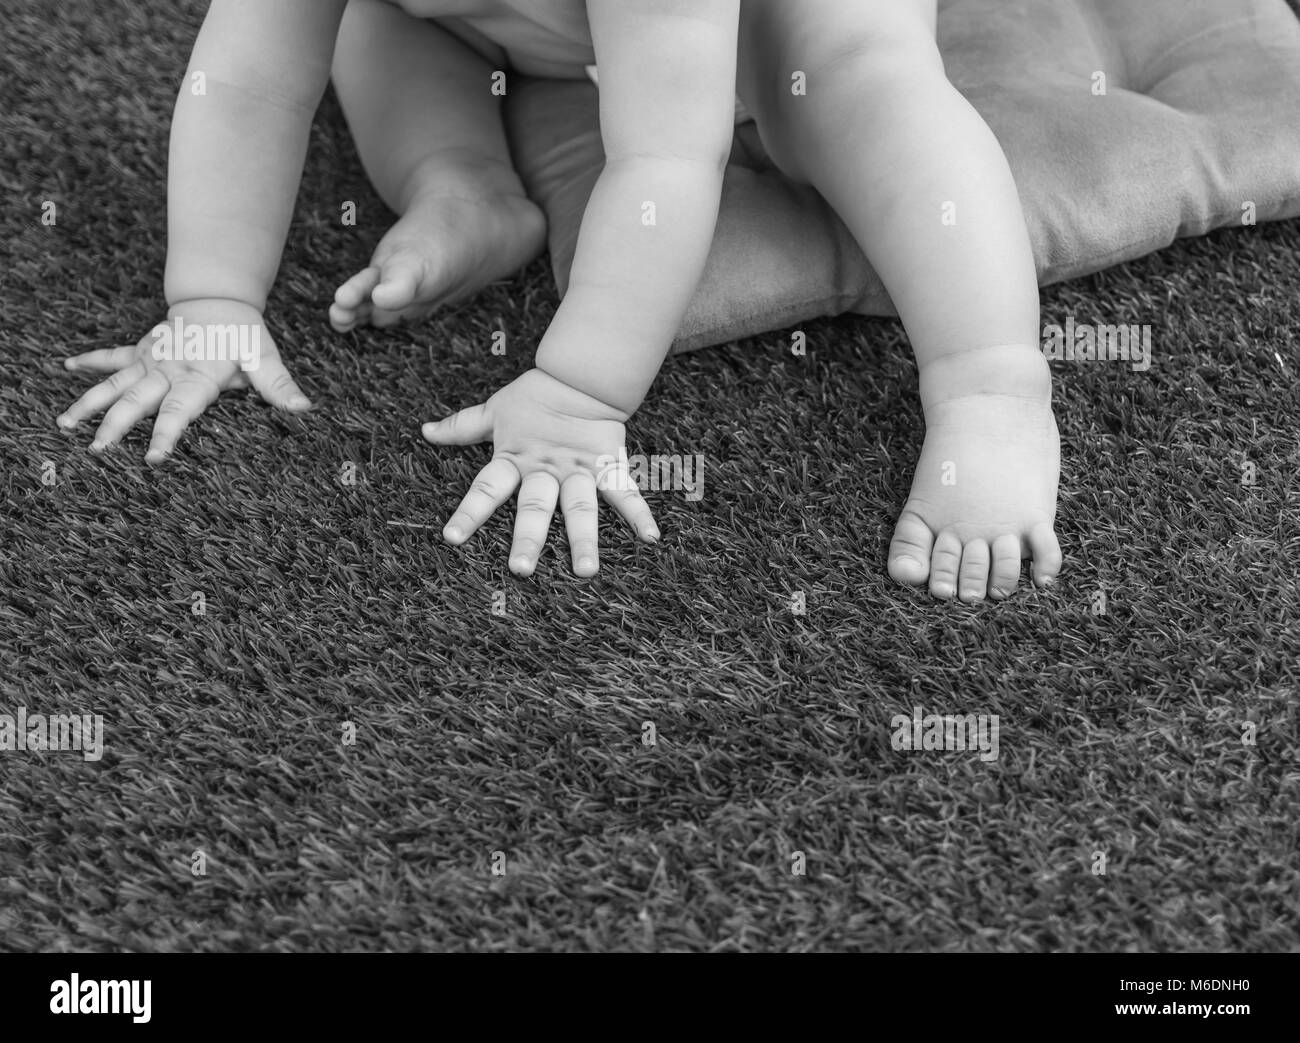 baby hands and feet on the grass - Stock Image